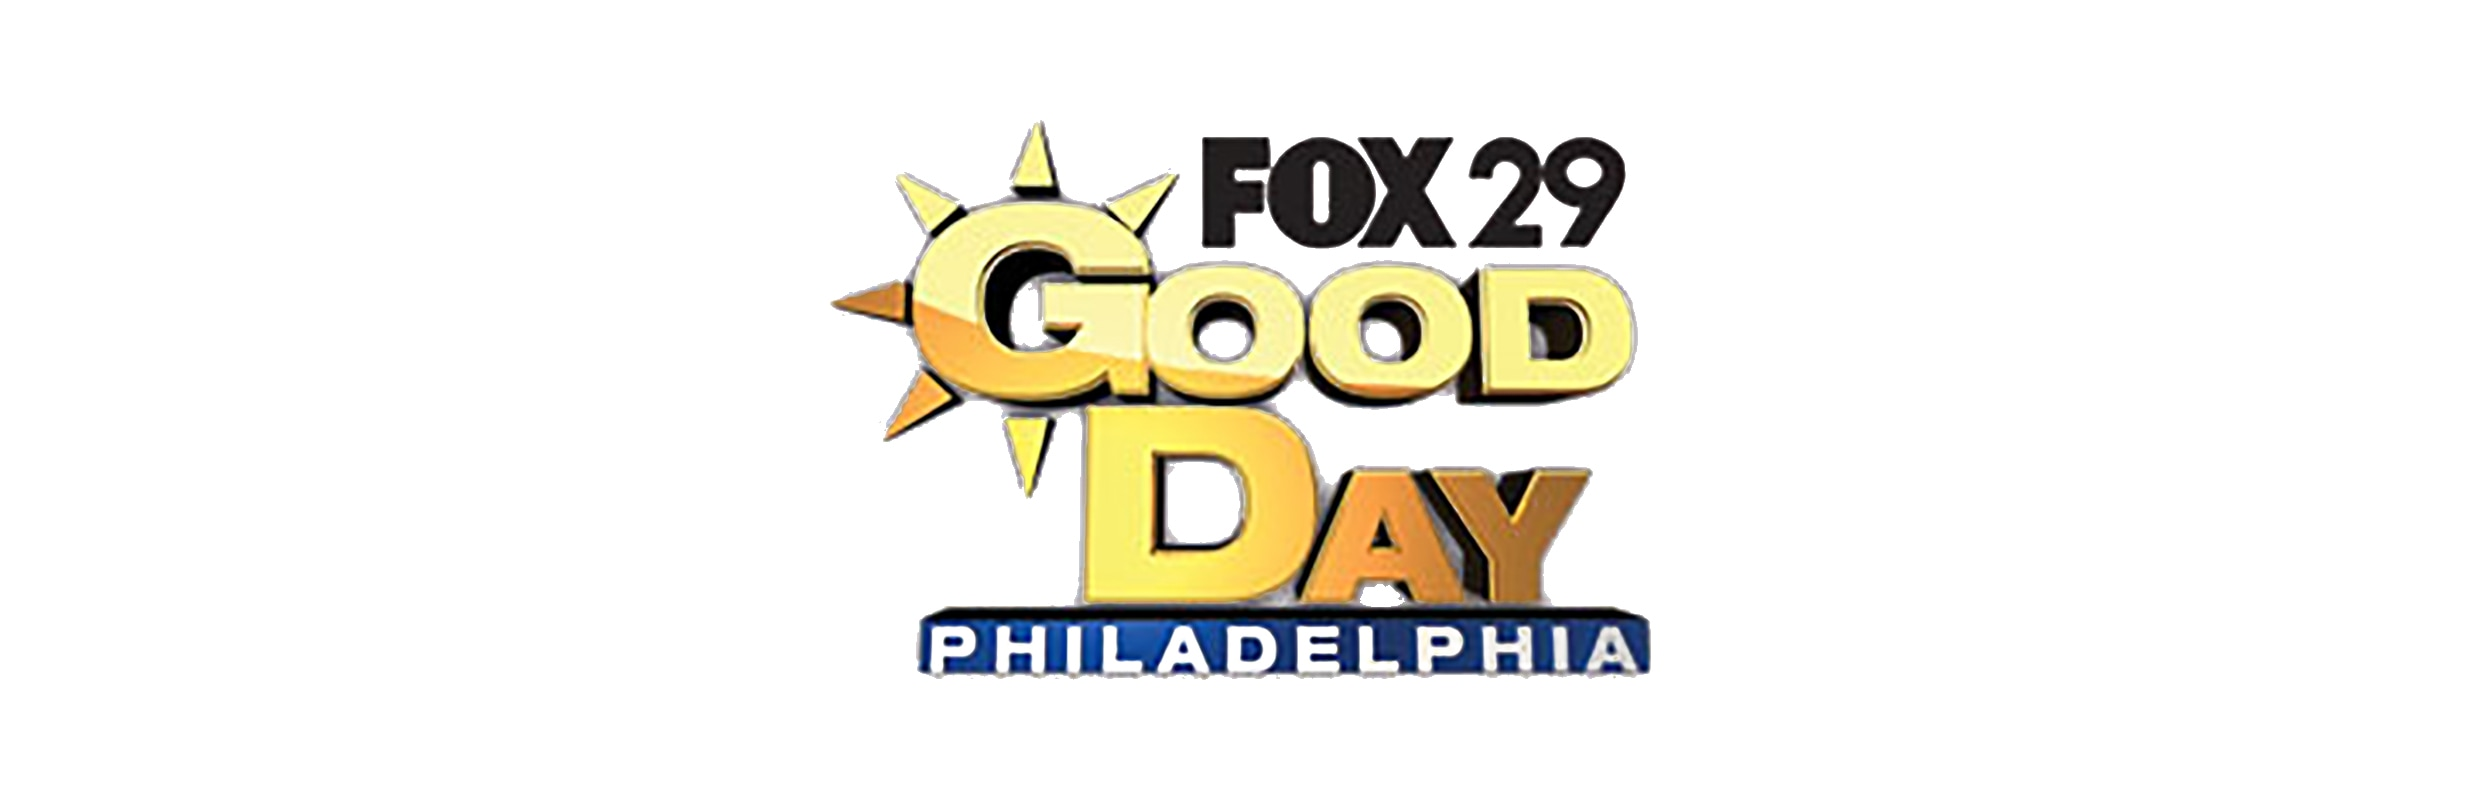 Good day philly fox 29 selected